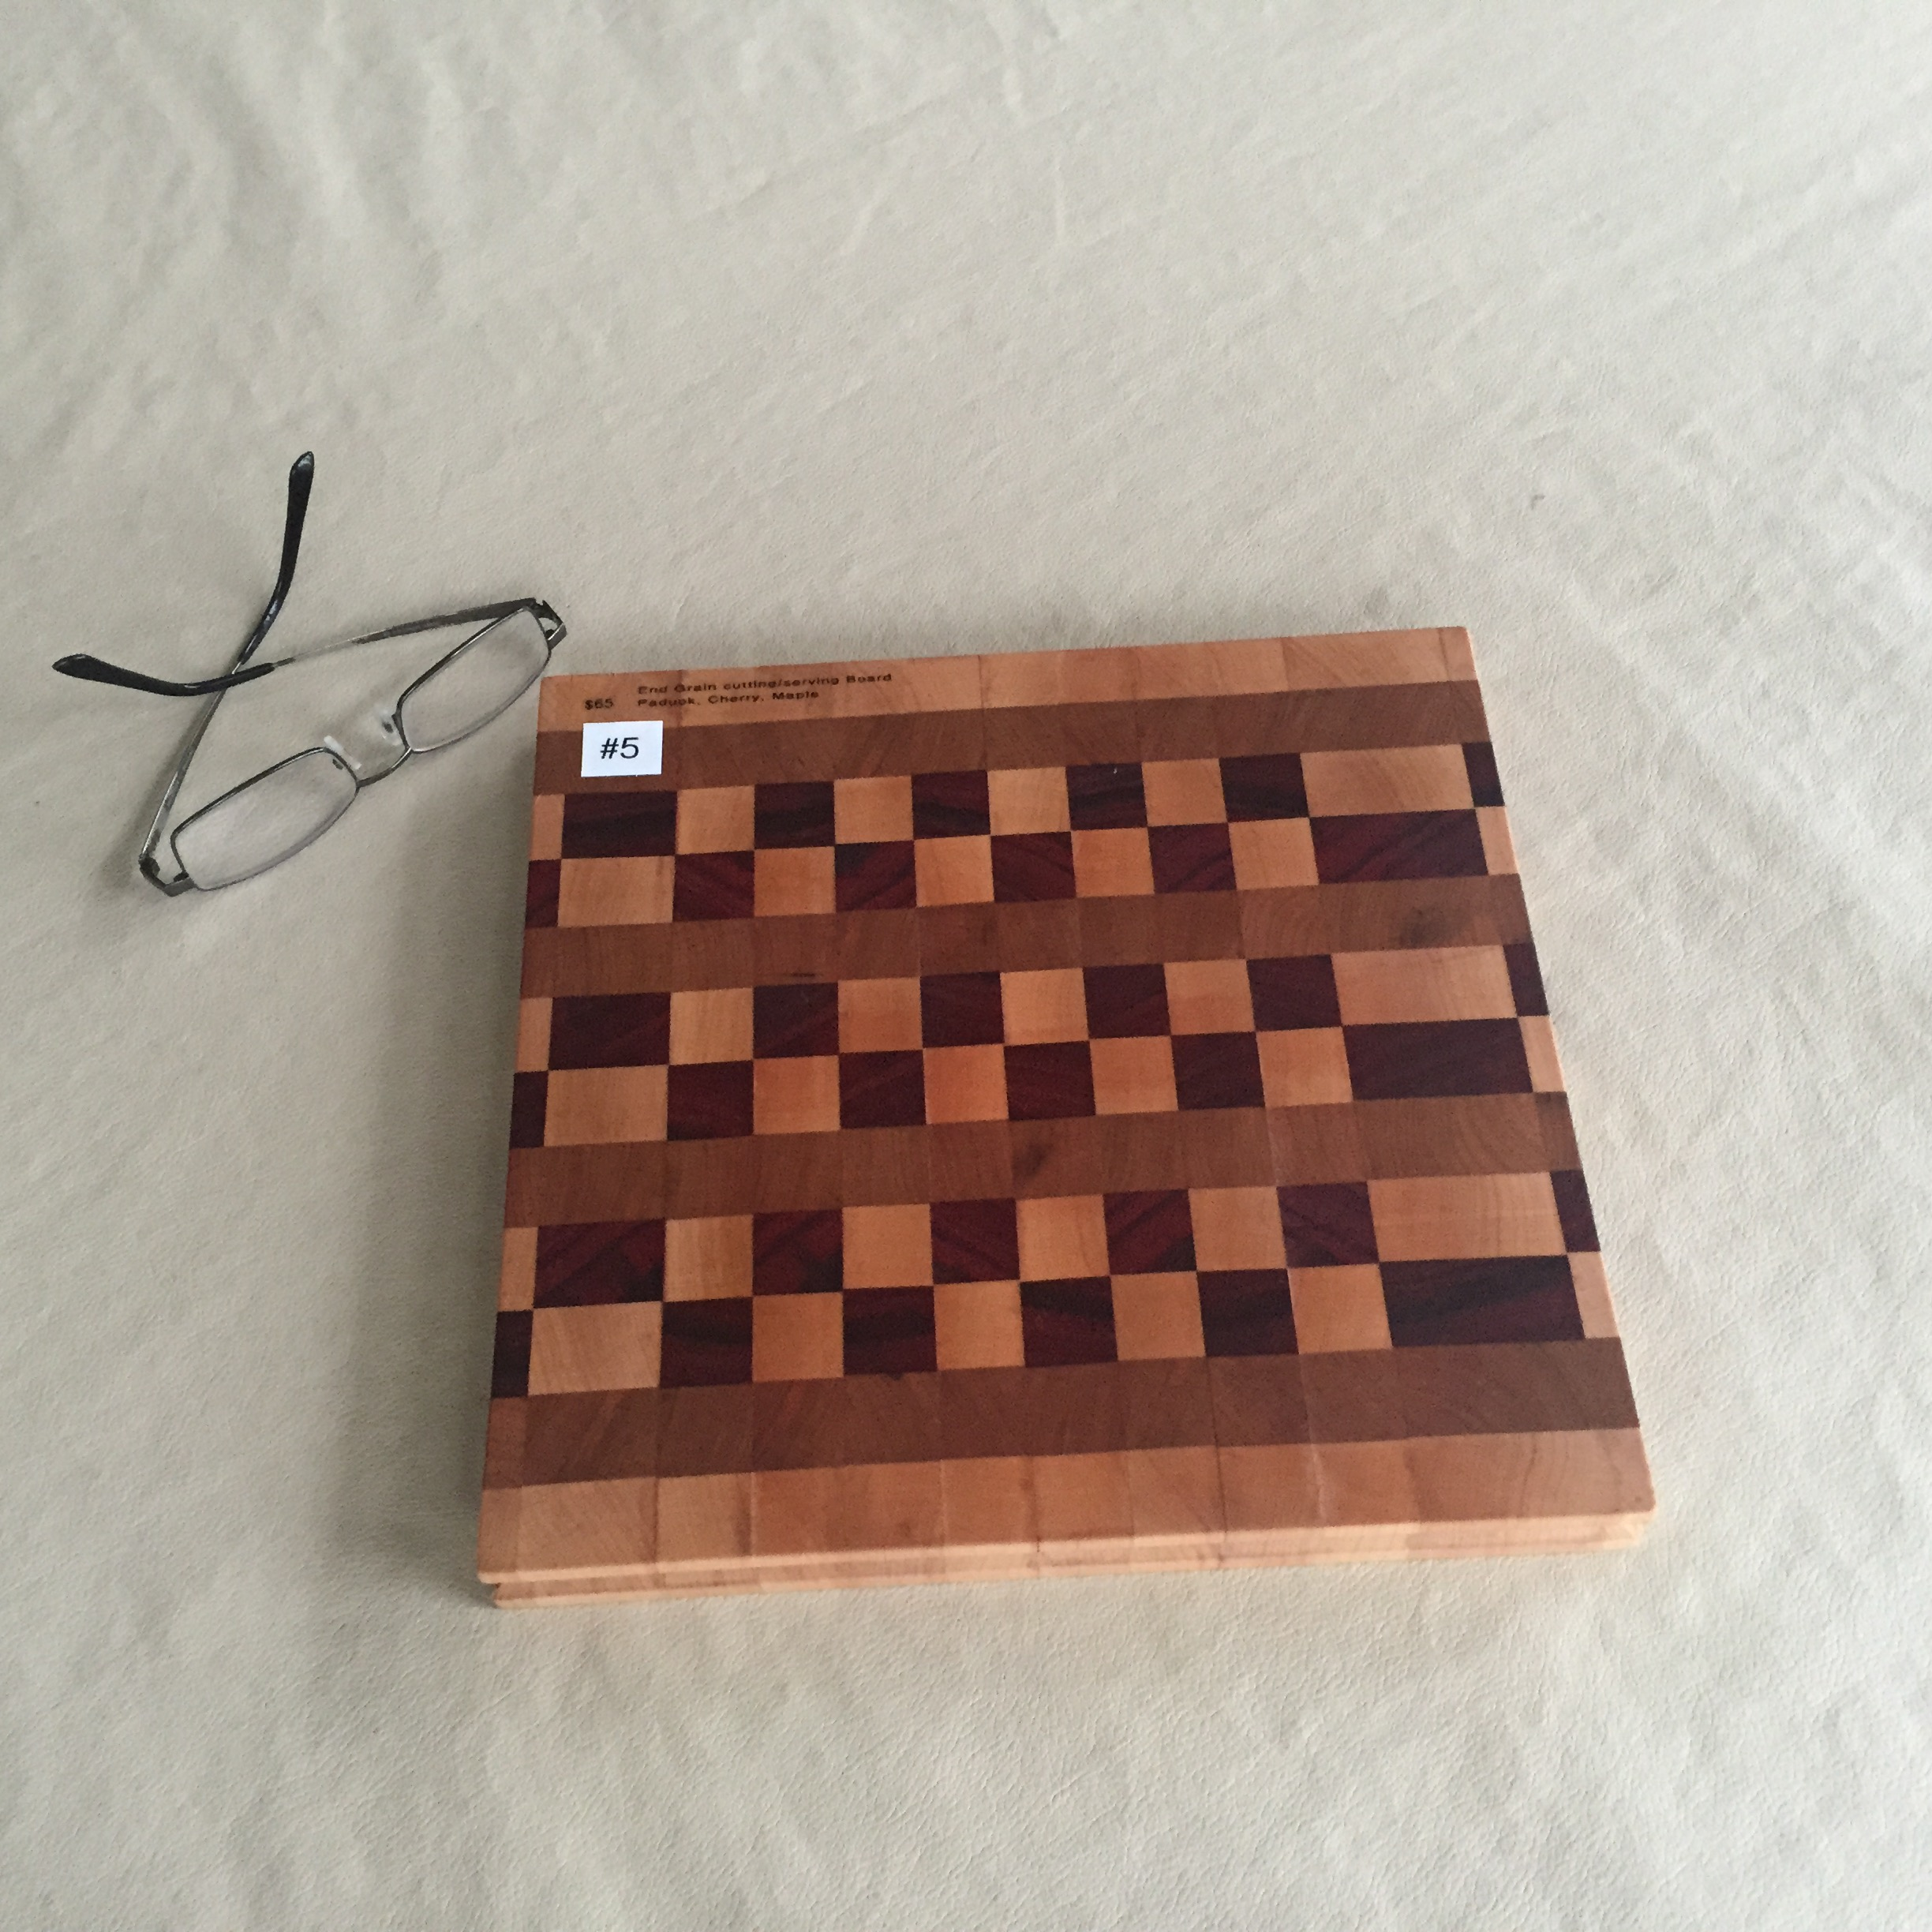 #5 Square serving/cutting board